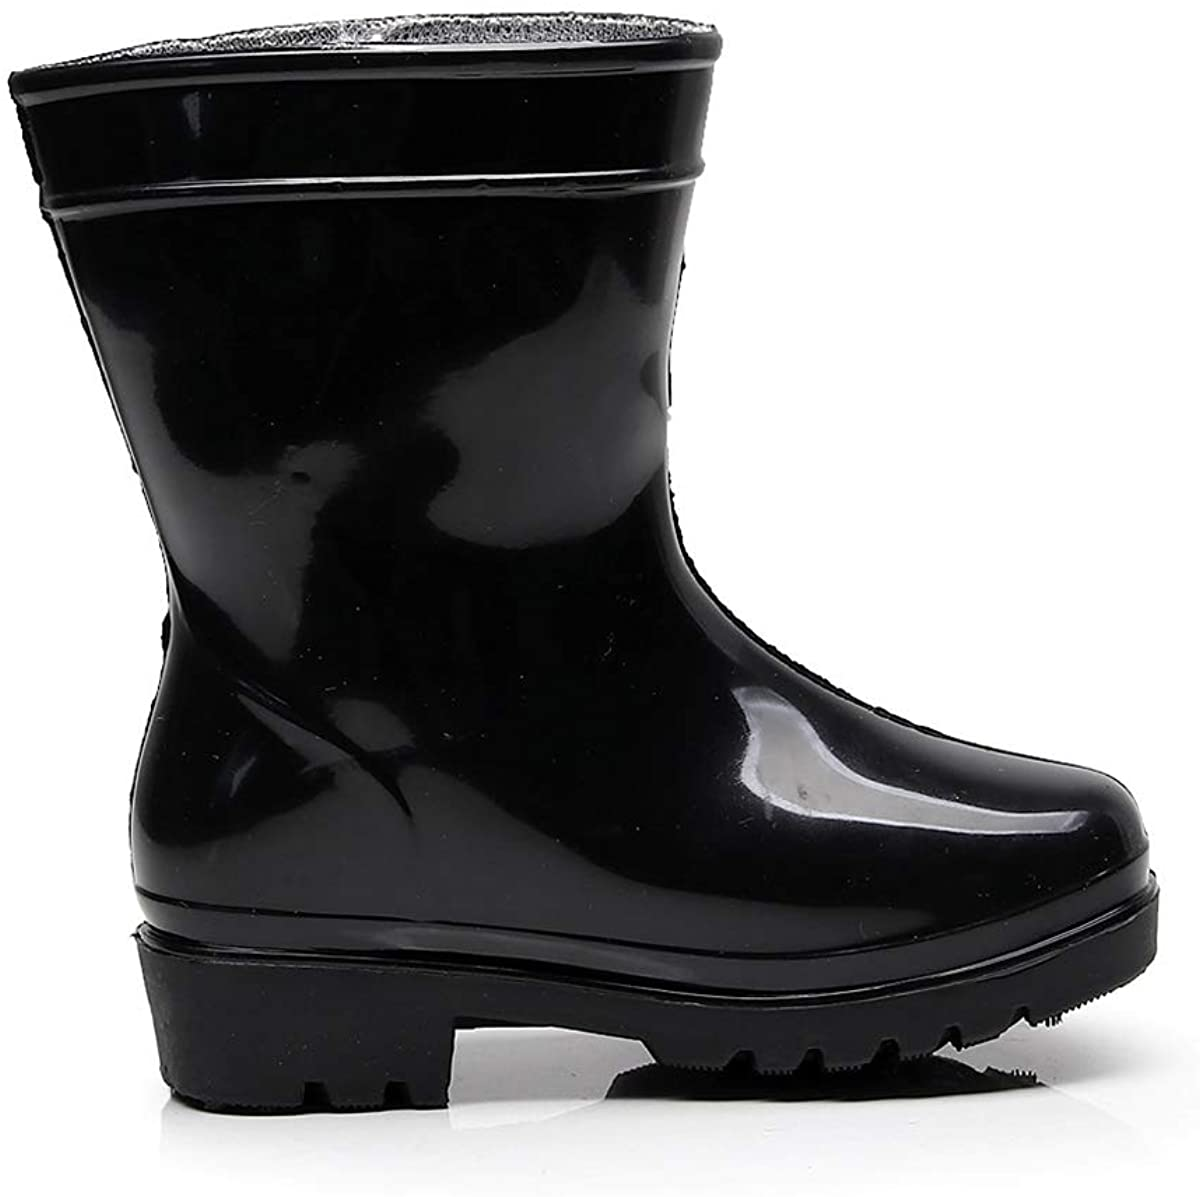 NOMSOCR Kids' Boys Girls Rubber Rain Boot